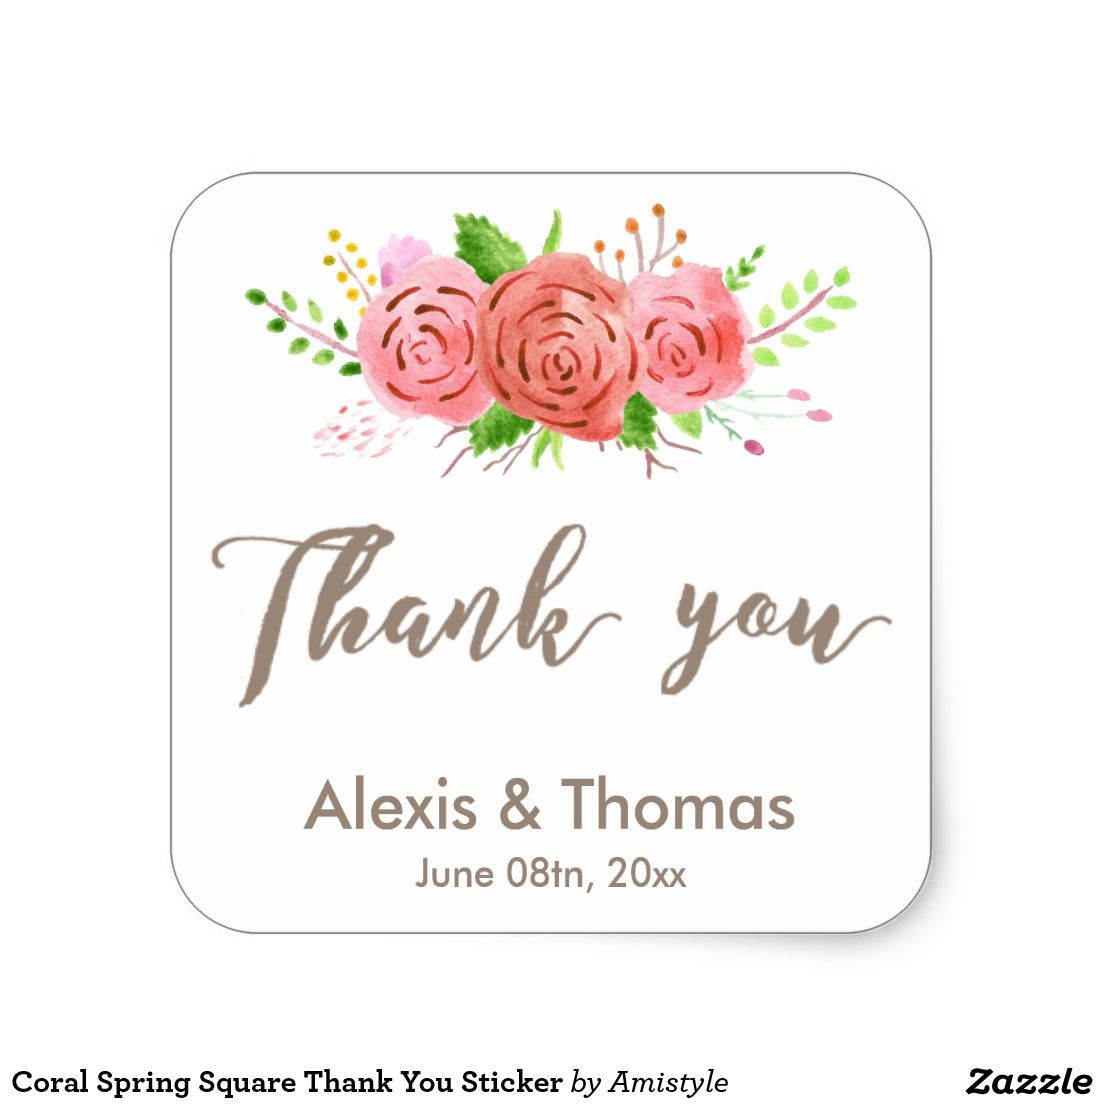 Coral Spring Square Thank You Sticker Pinterest Coral Springs